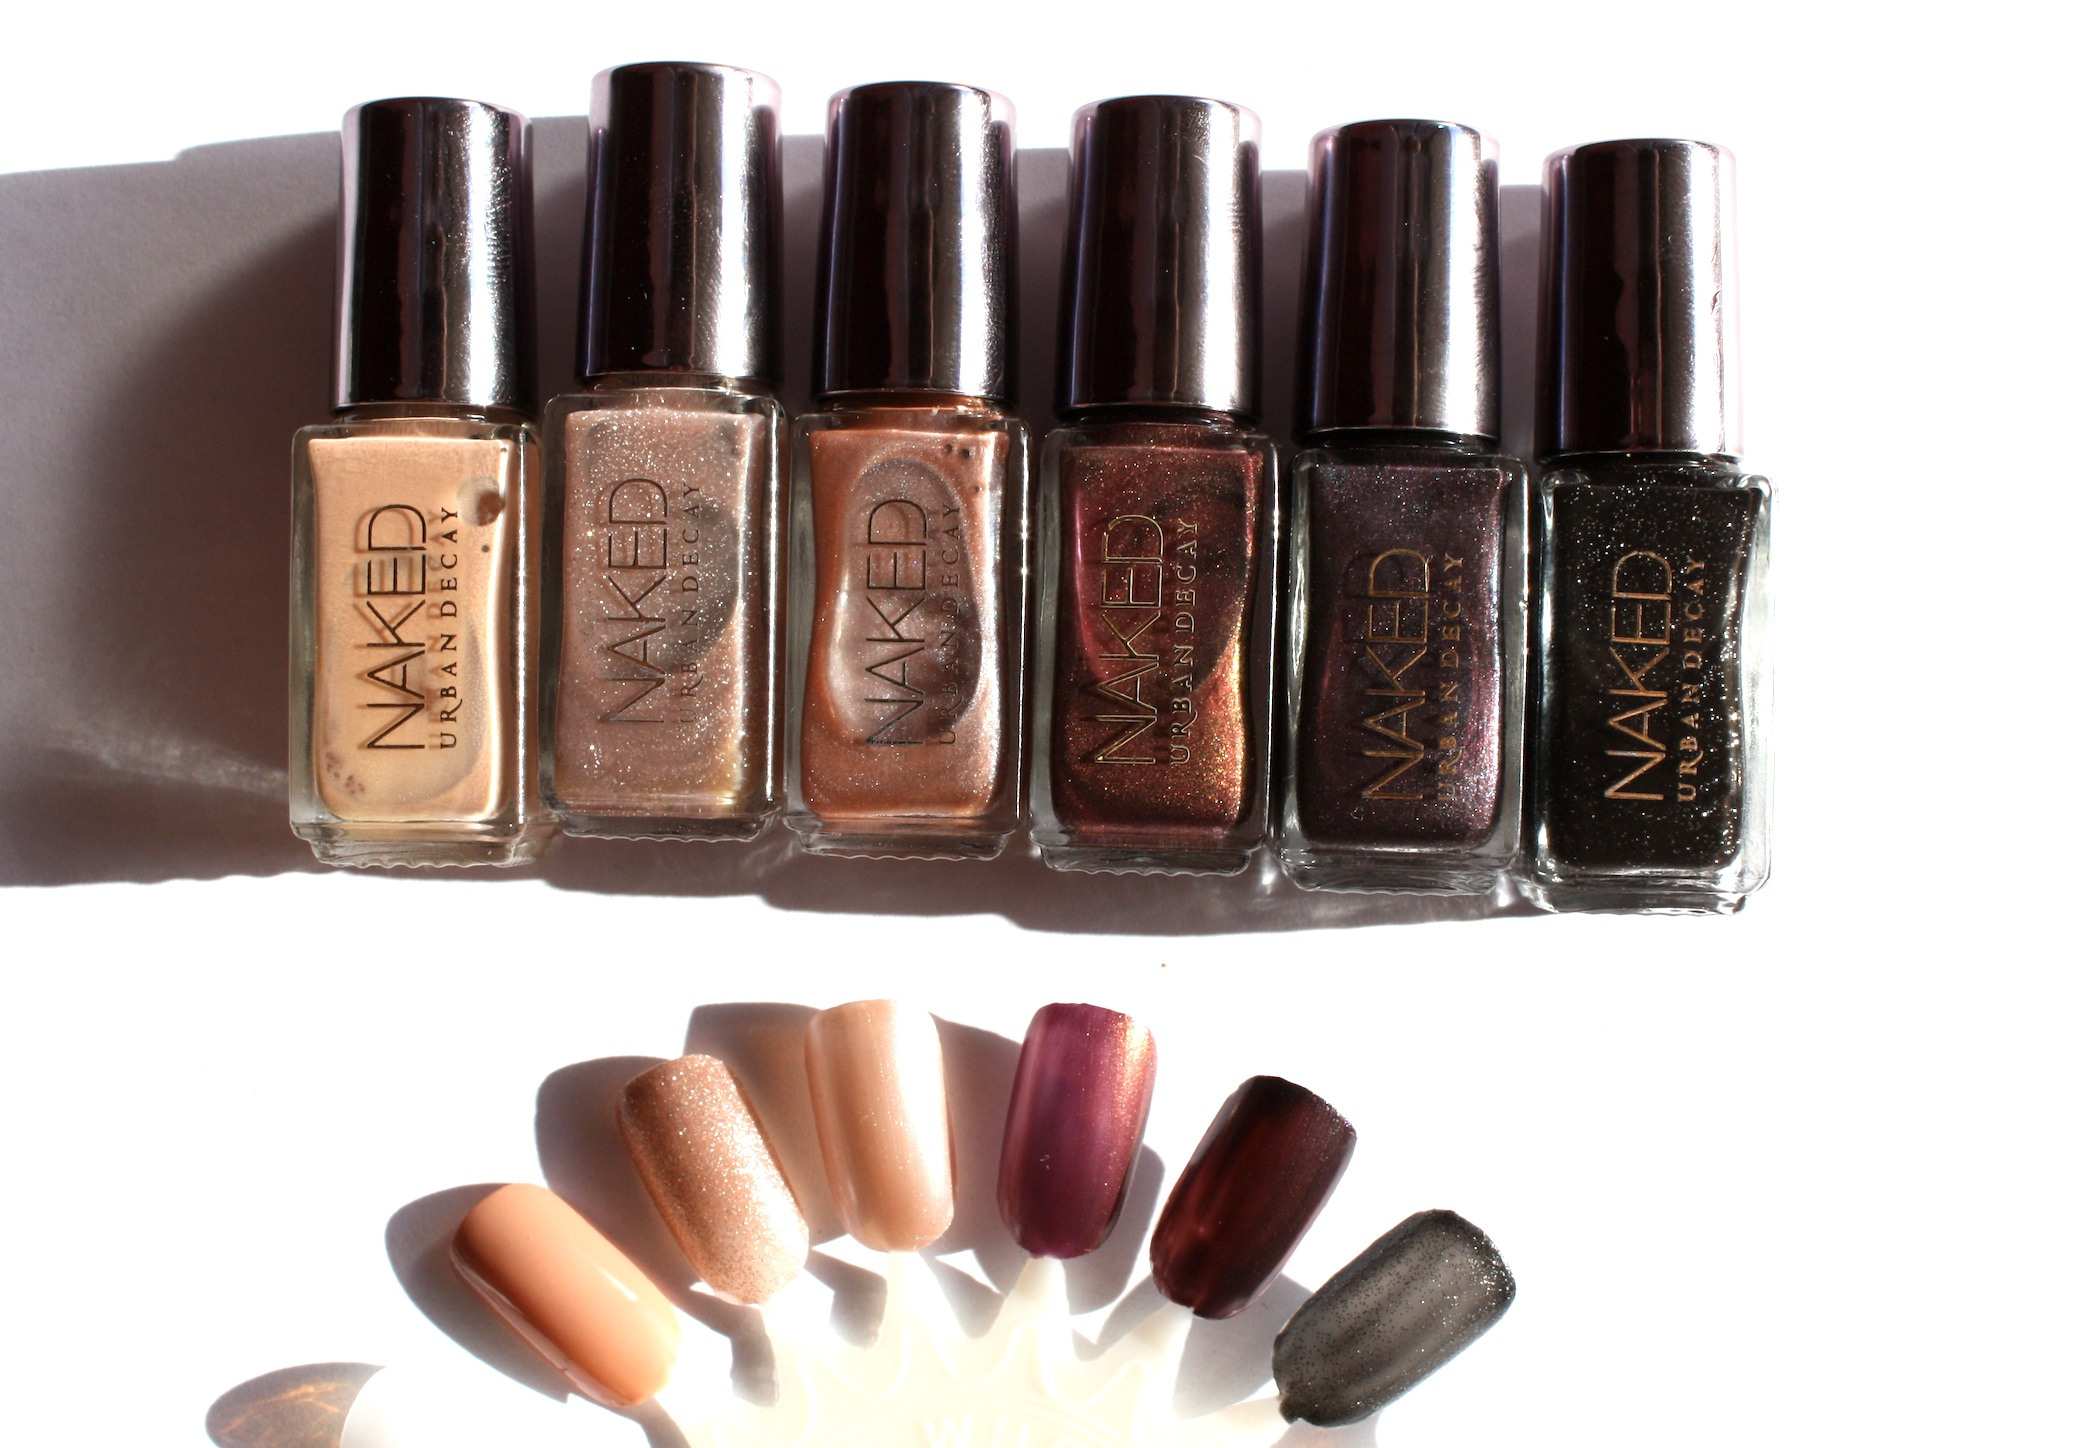 Urban Decay Naked Nail Polish Swatches – horrendous color